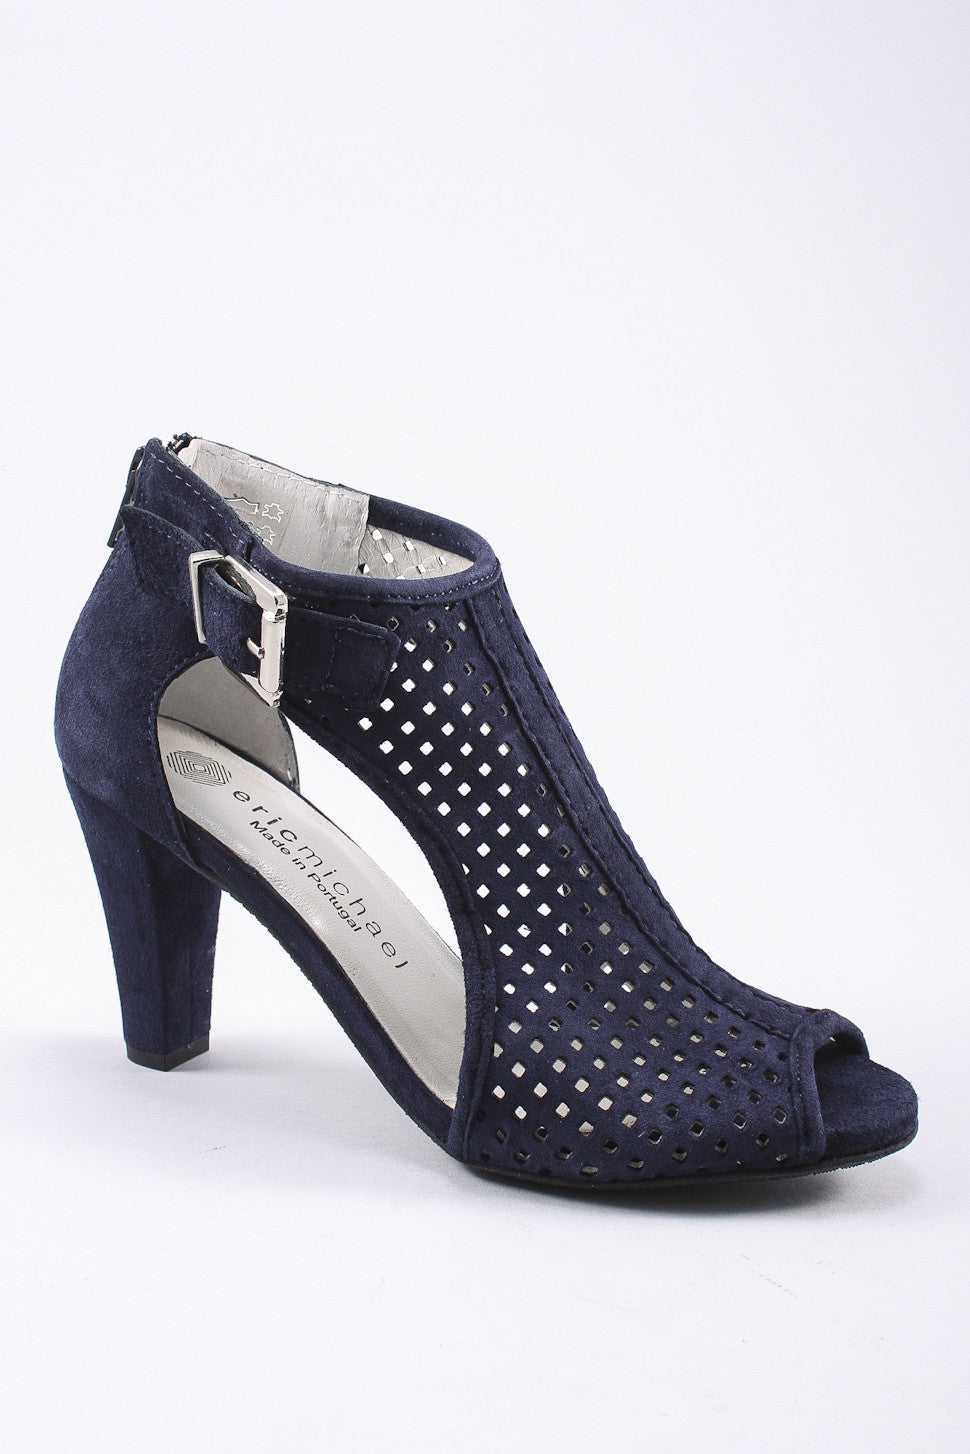 Crystal Open Toe Heel in Navy